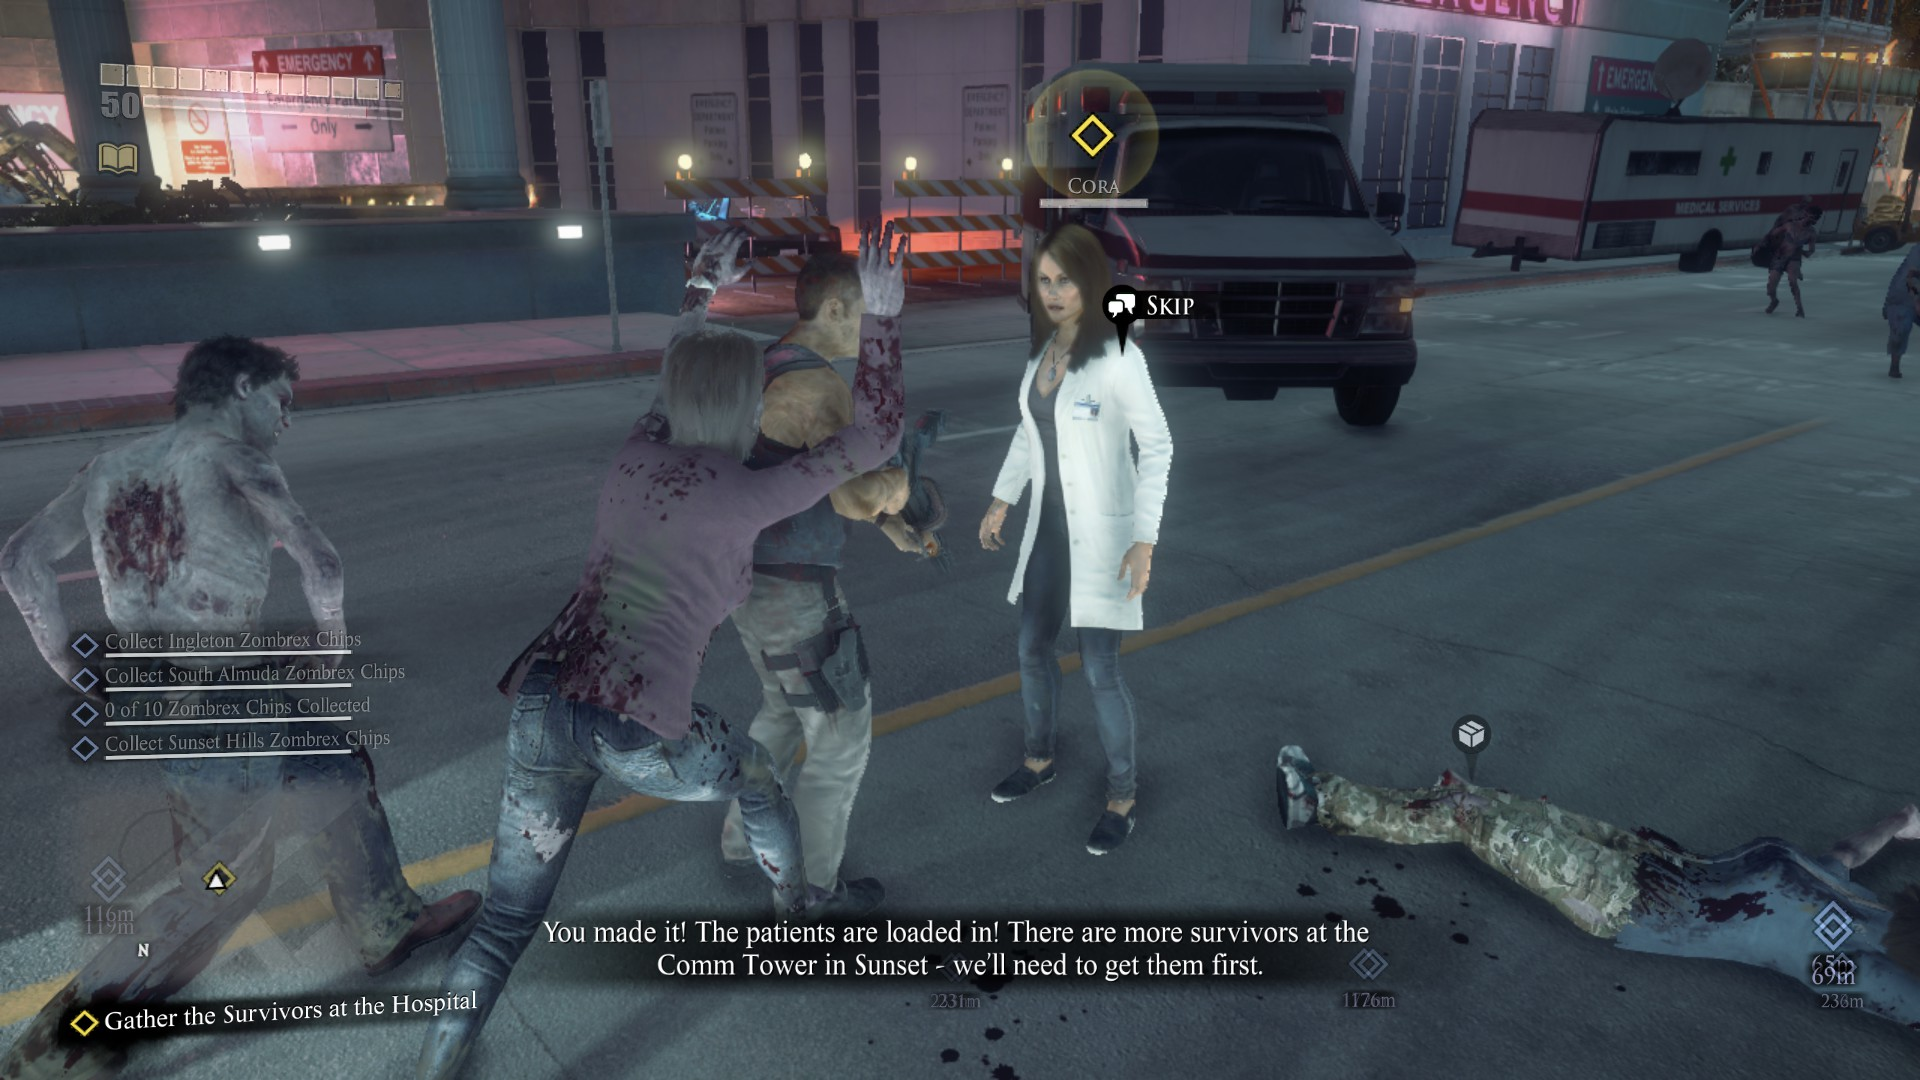 Gather the Survivors at the Hospital